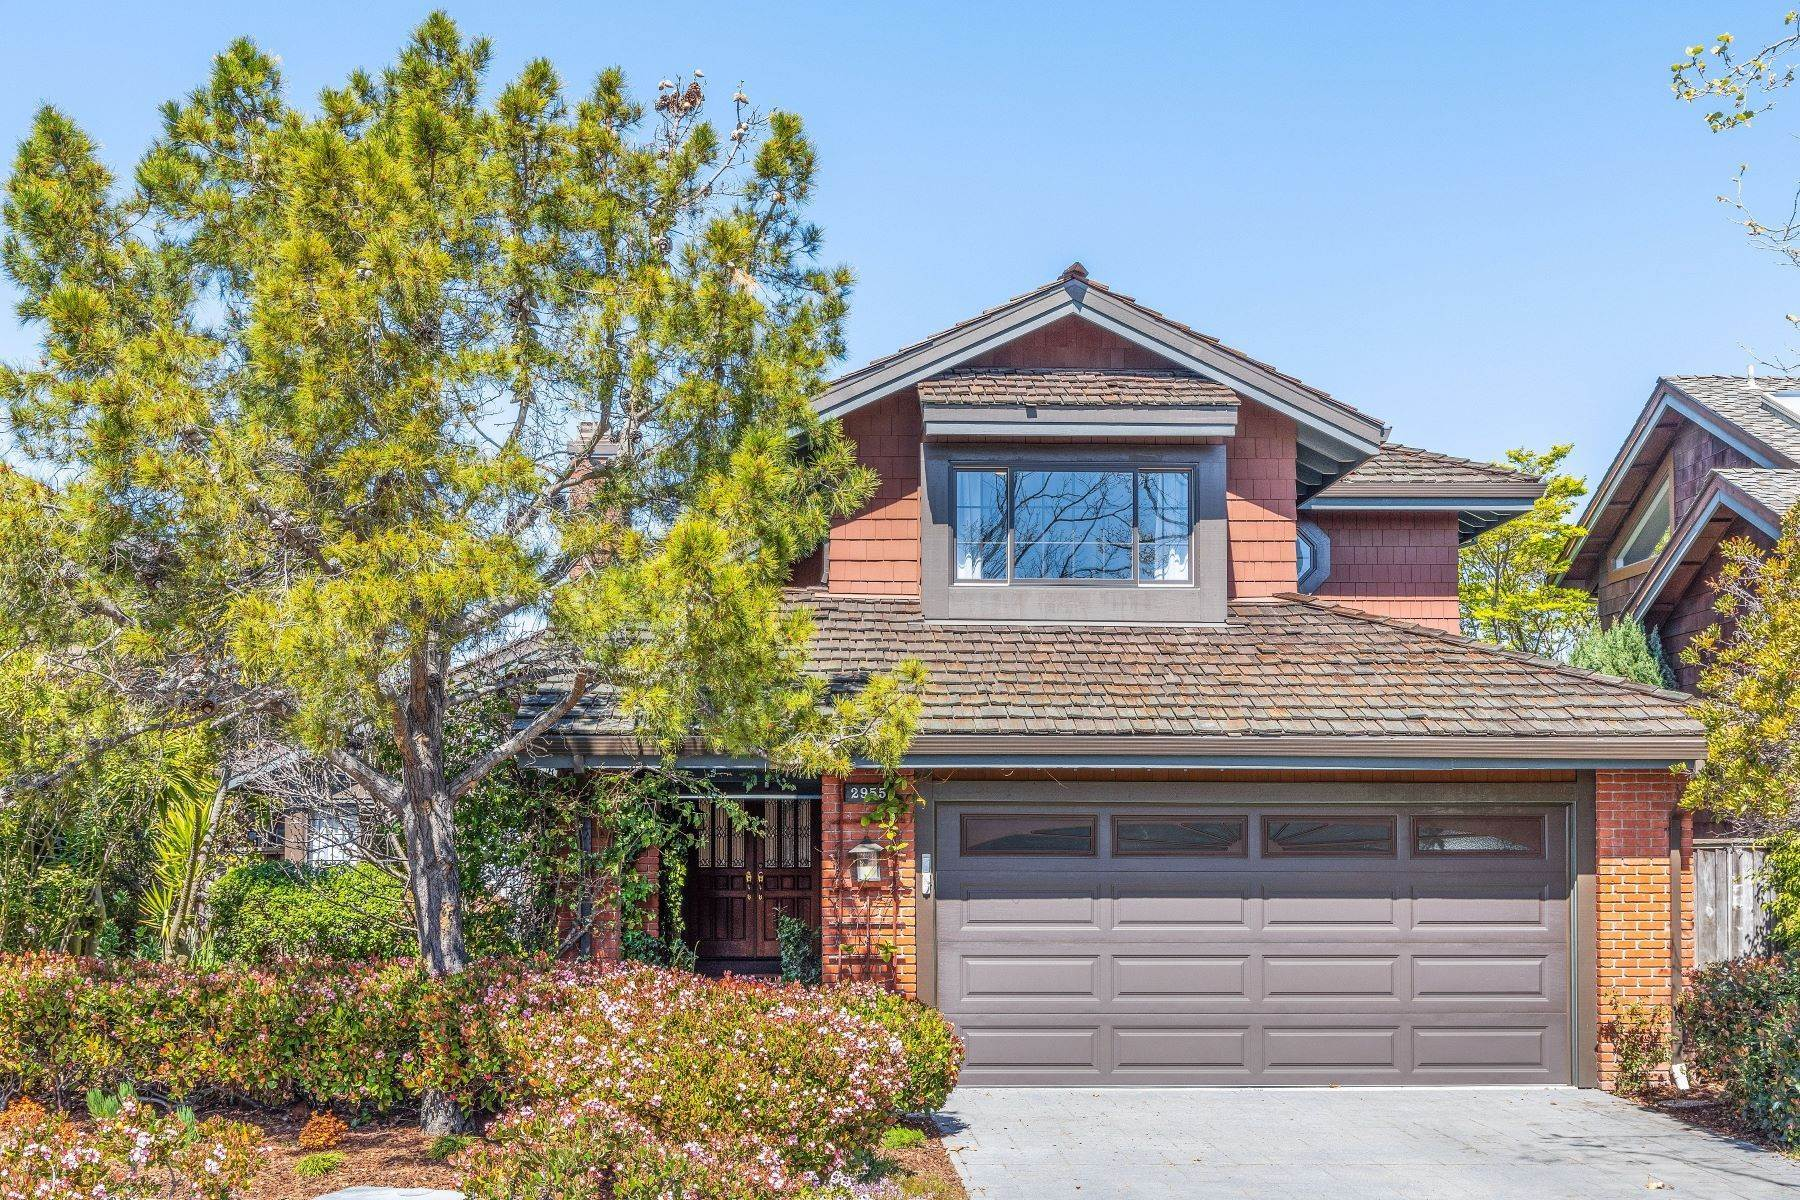 Single Family Homes for Sale at Exceptional Harbor Bay Waterfront Home 2955 Sea View Parkway Alameda, California 94502 United States